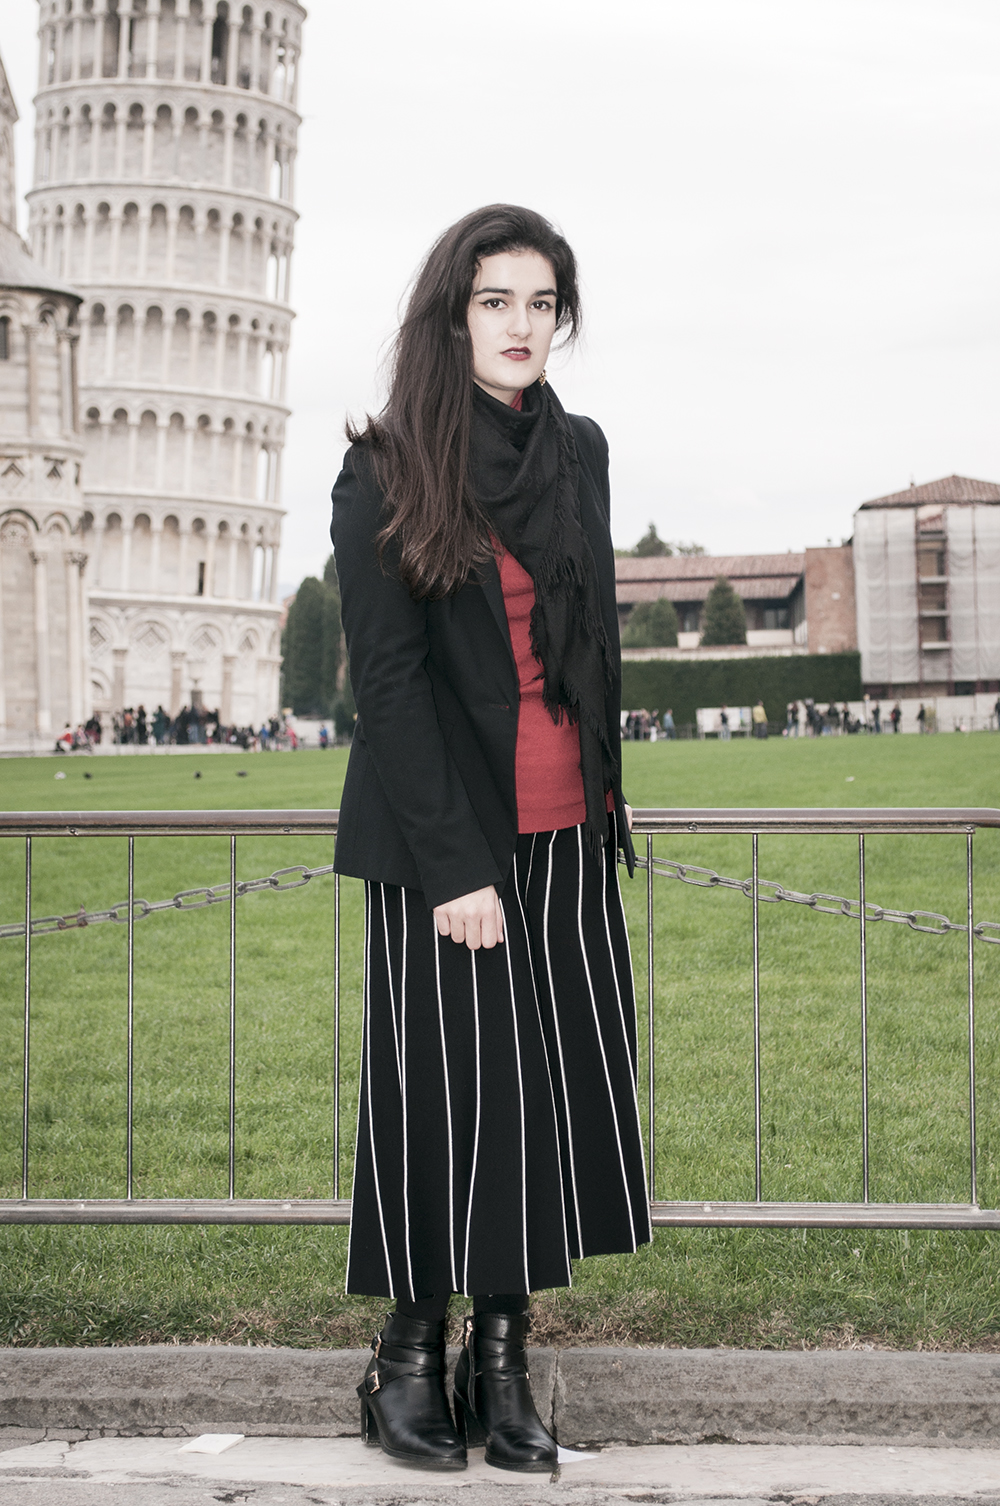 something fashion blogger influencer streetstyle firenze spain italianbloggers erasmus student culotte pants livorno pisa traveling europe_0535